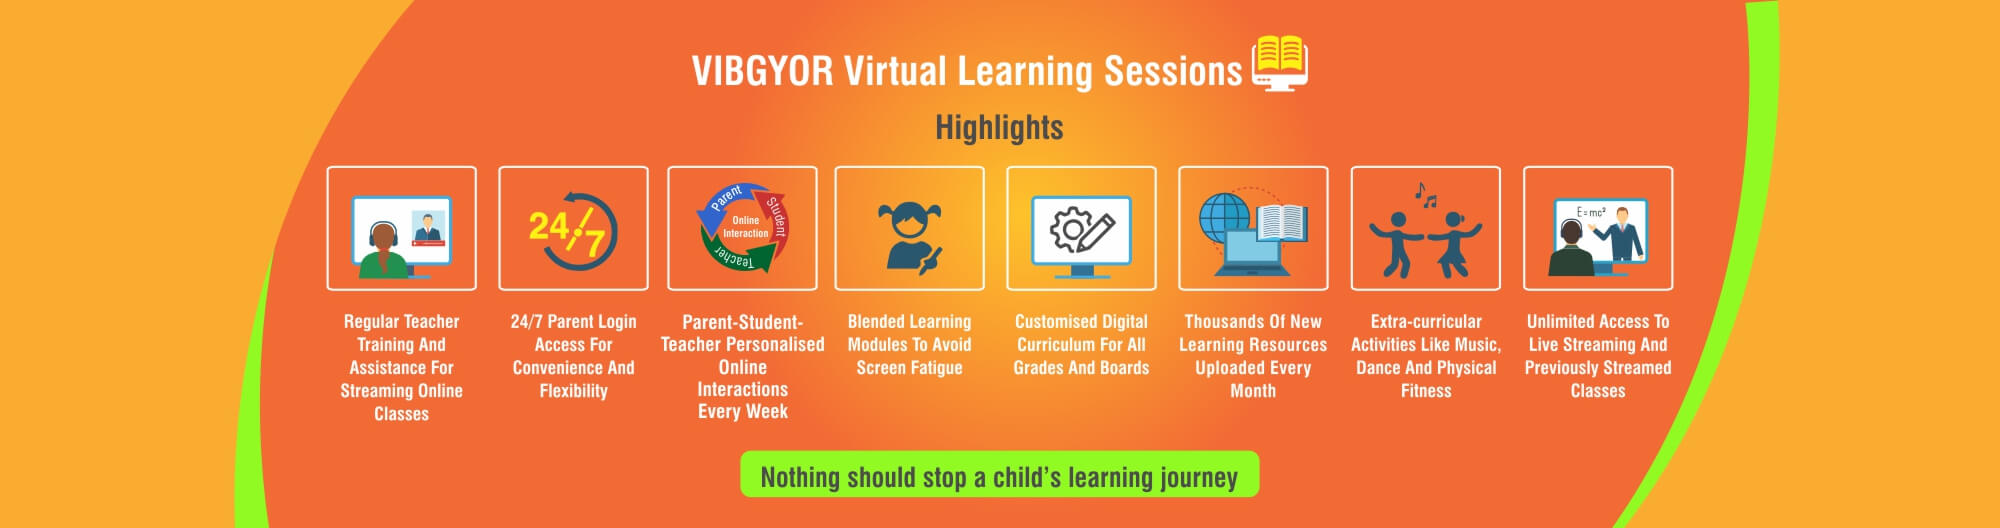 Virtual Learning Sessions